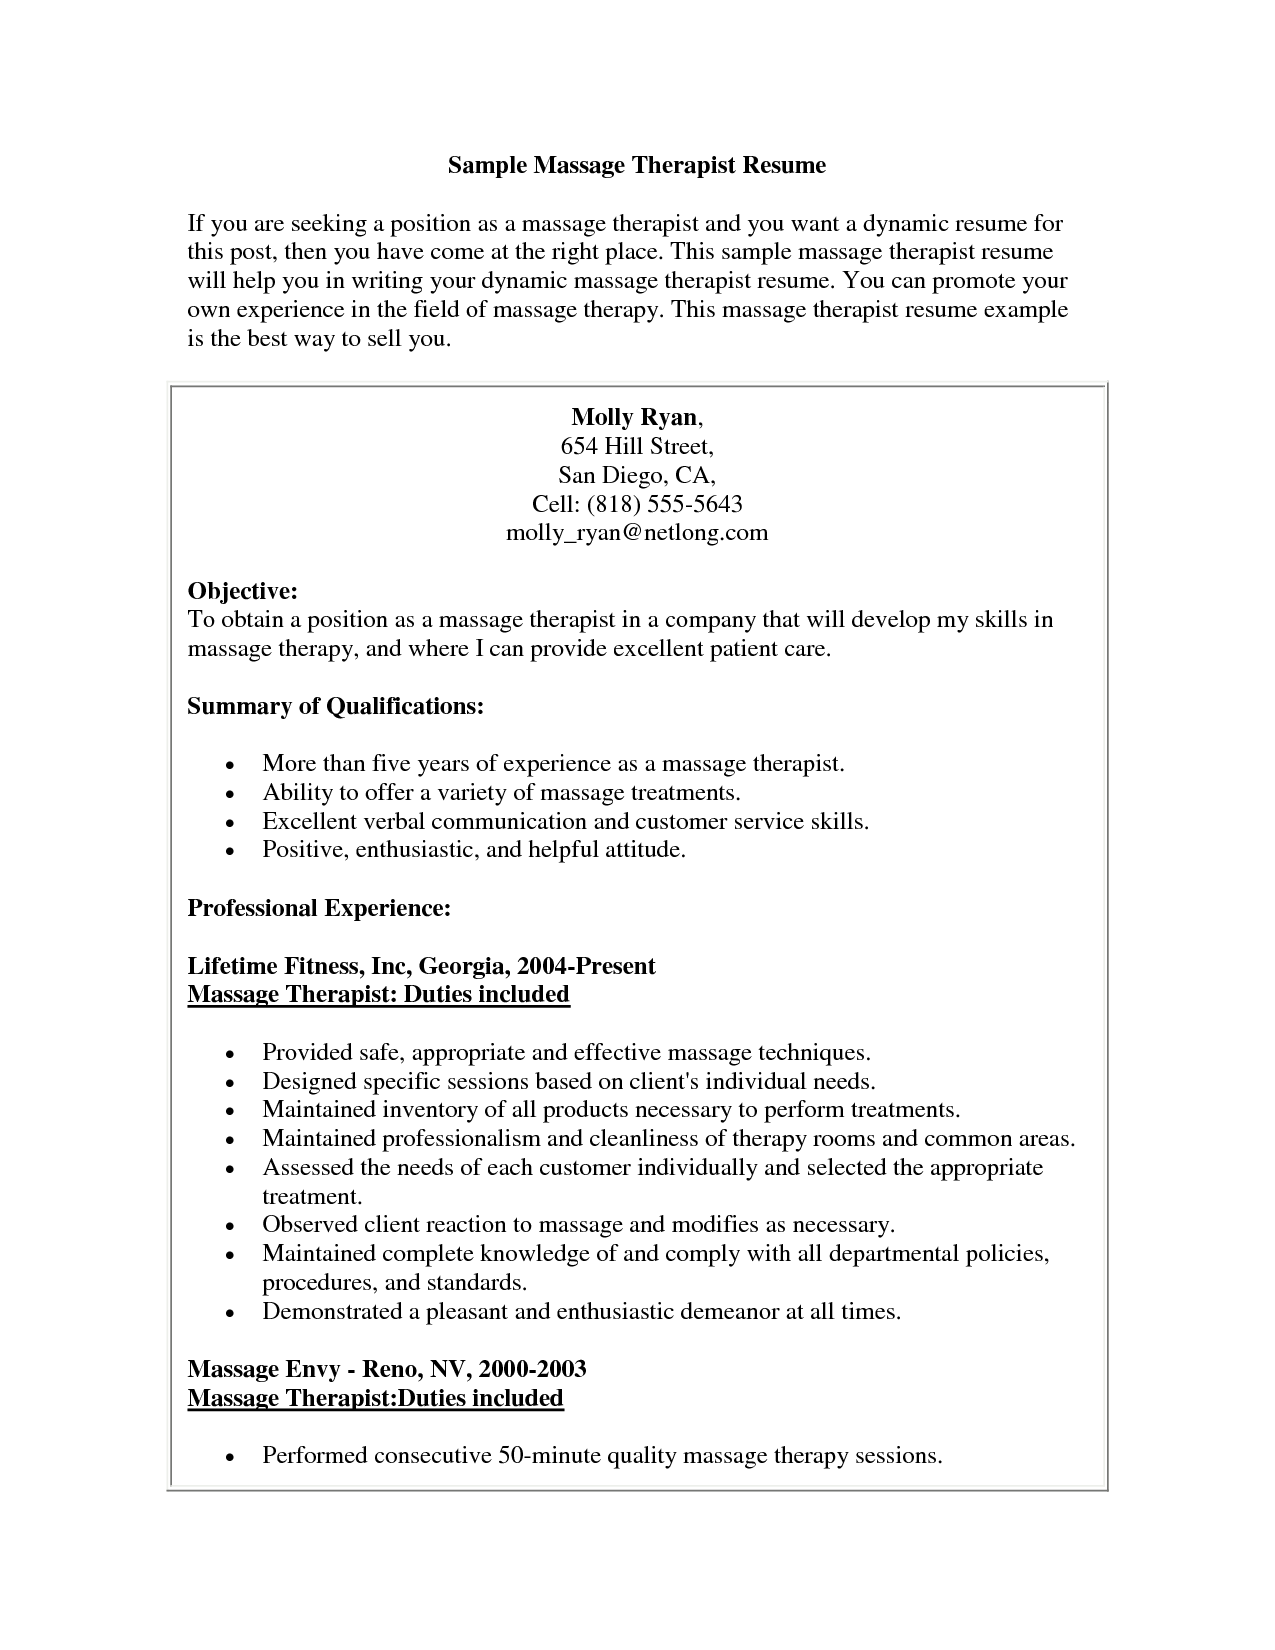 Massage Therapist Resume Sample Massage Therapist Resume Sample ...